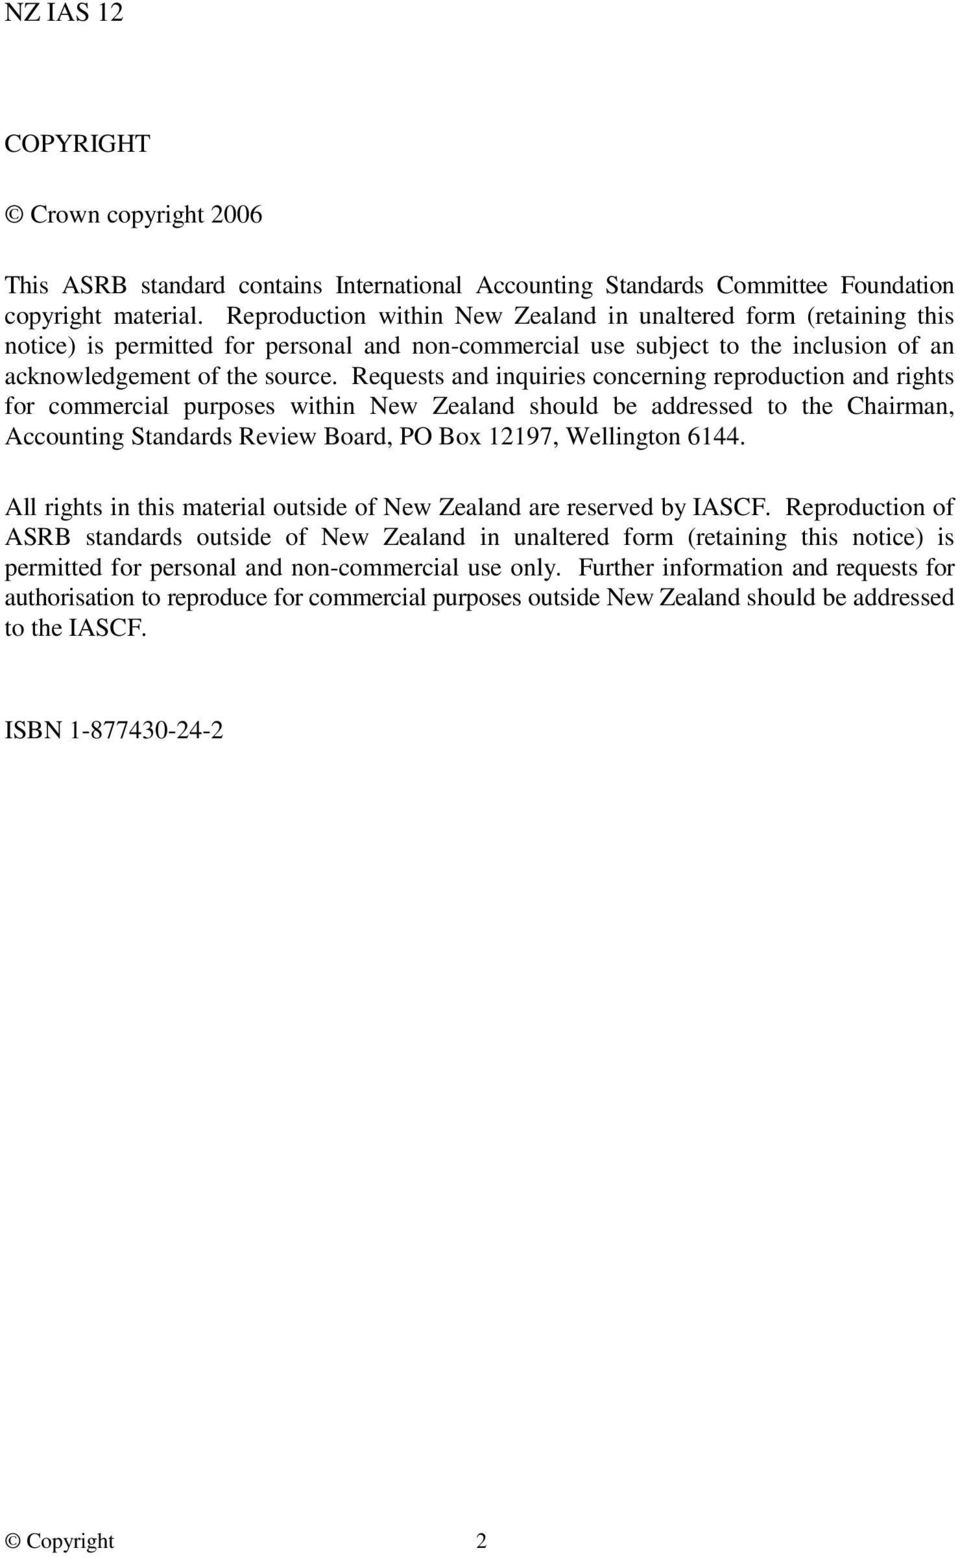 Requests and inquiries concerning reproduction and rights for commercial purposes within New Zealand should be addressed to the Chairman, Accounting Standards Review Board, PO Box 12197, Wellington